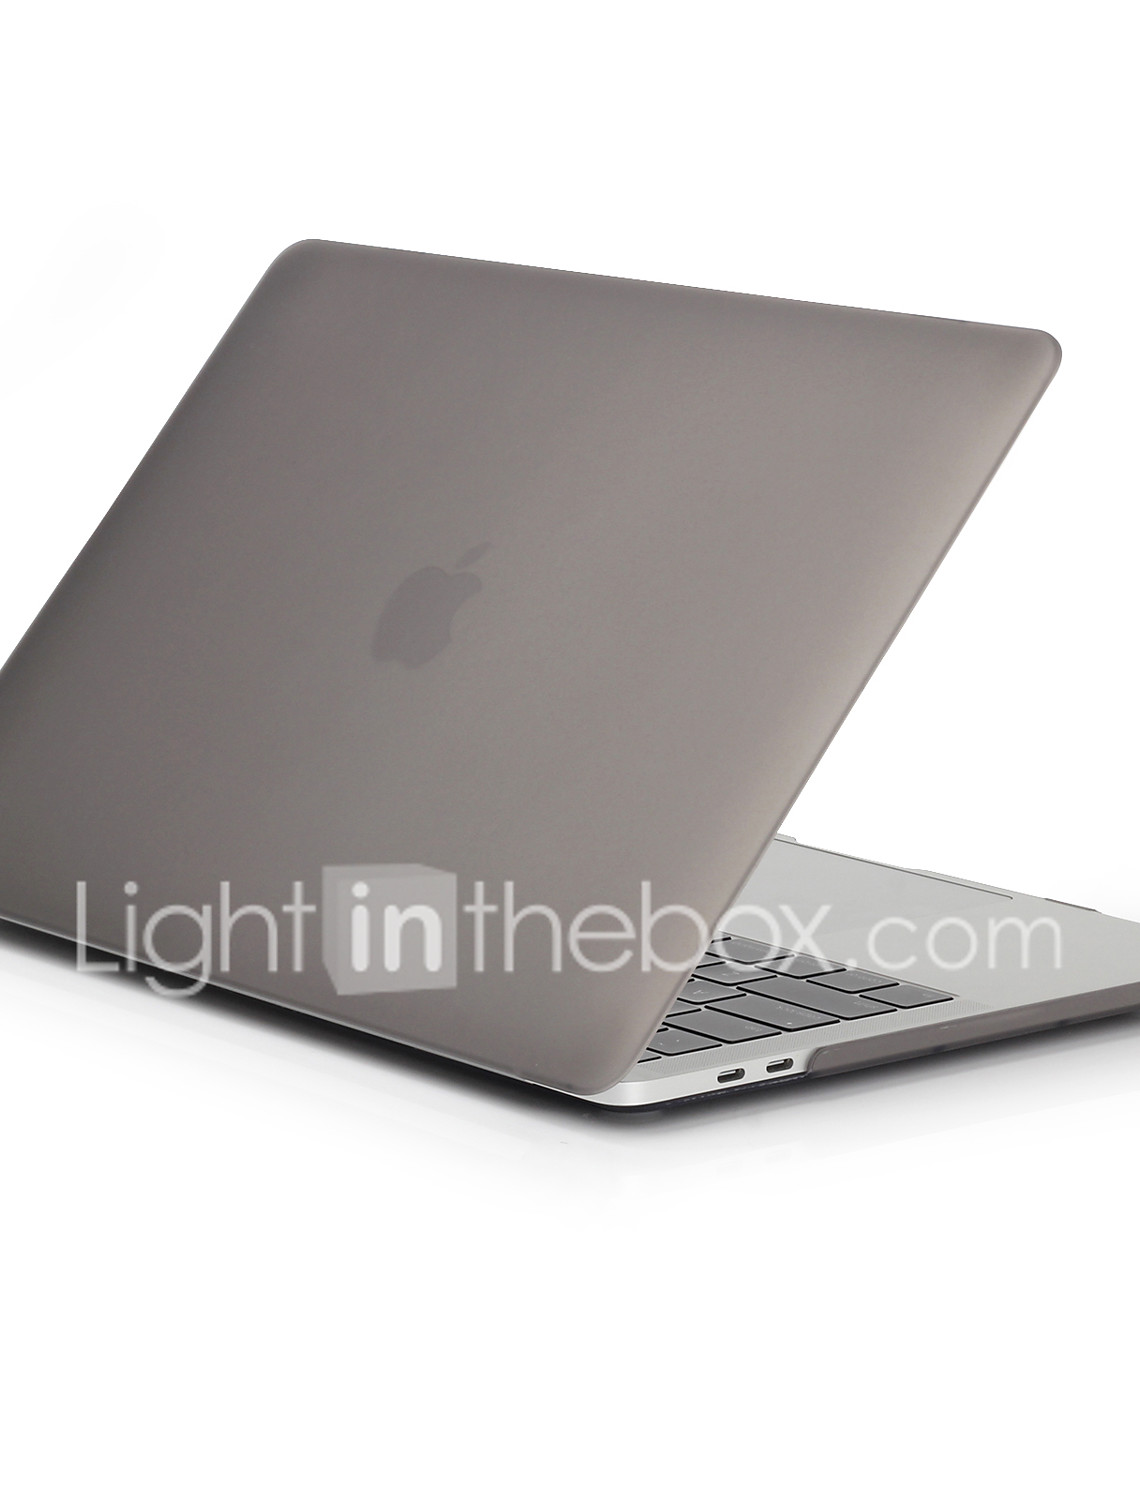 the best attitude ca3f9 f908c MacBook Case Frosted Solid Colored Polycarbonate for New MacBook Pro  15-inch / New MacBook Pro 13-inch / Macbook Pro 15-inch